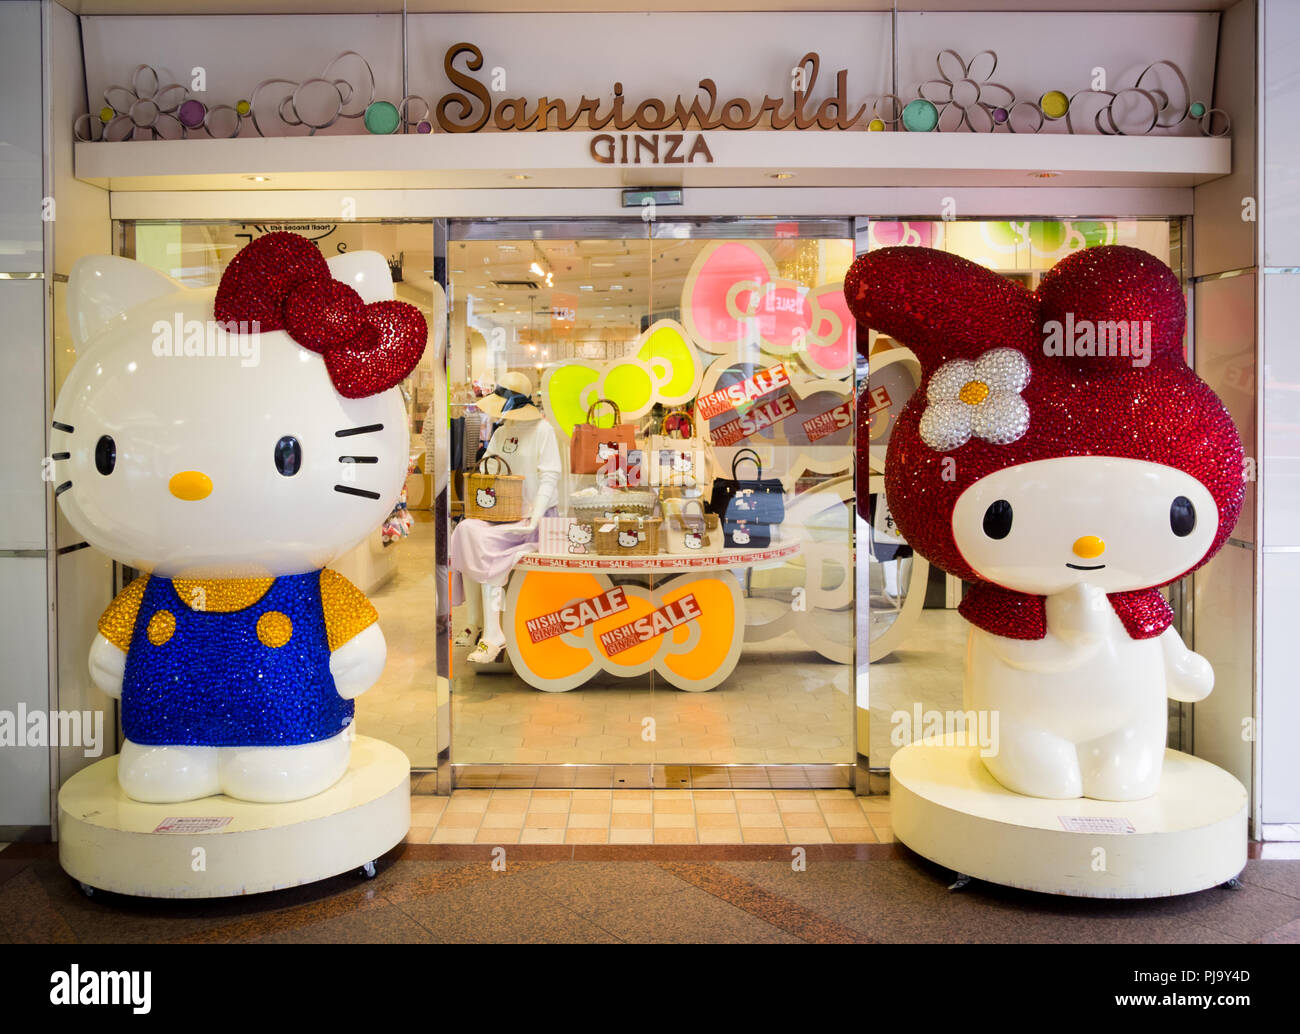 Hello Kitty and My Melody, two popular Sanrio characters, at Sanrioworld Ginza in Ginza, Tokyo, Japan. - Stock Image